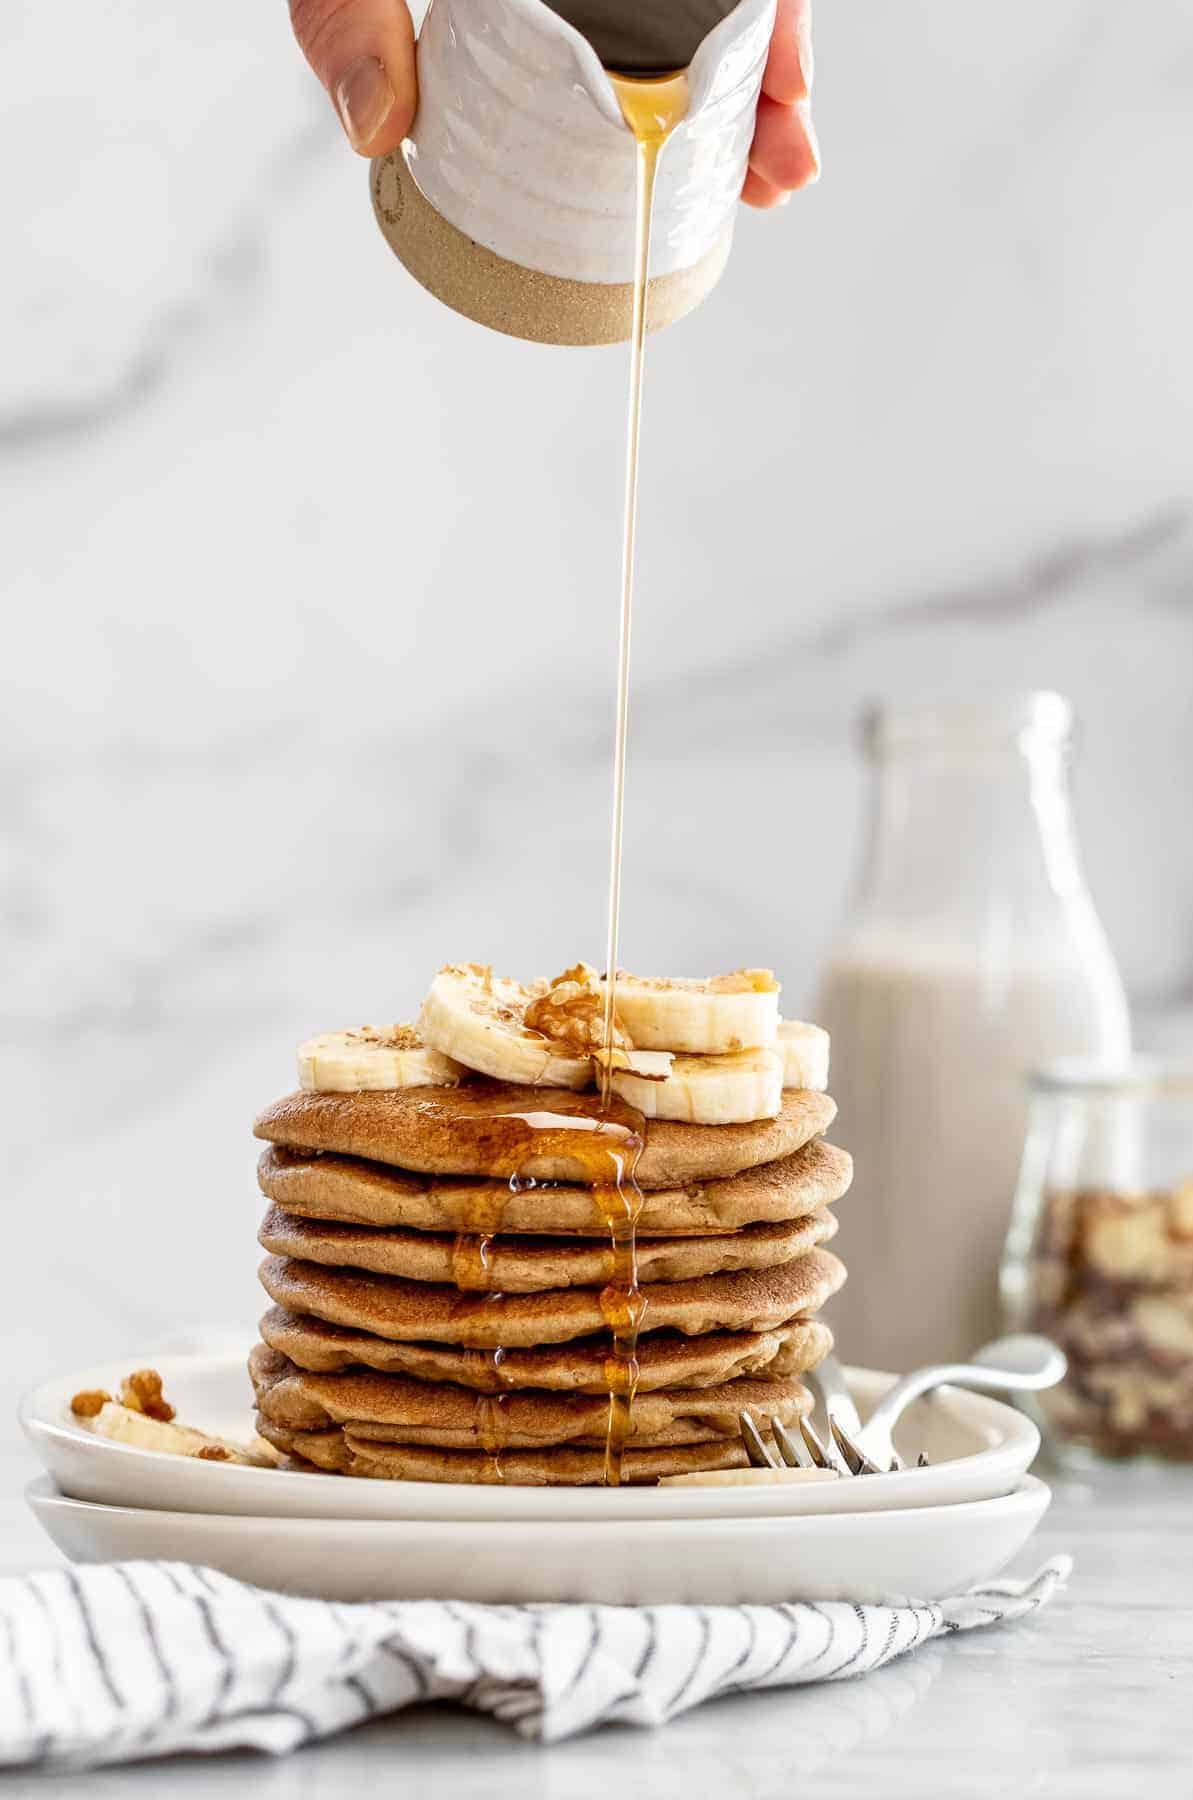 Pouring maple syrup on top of pancakes.